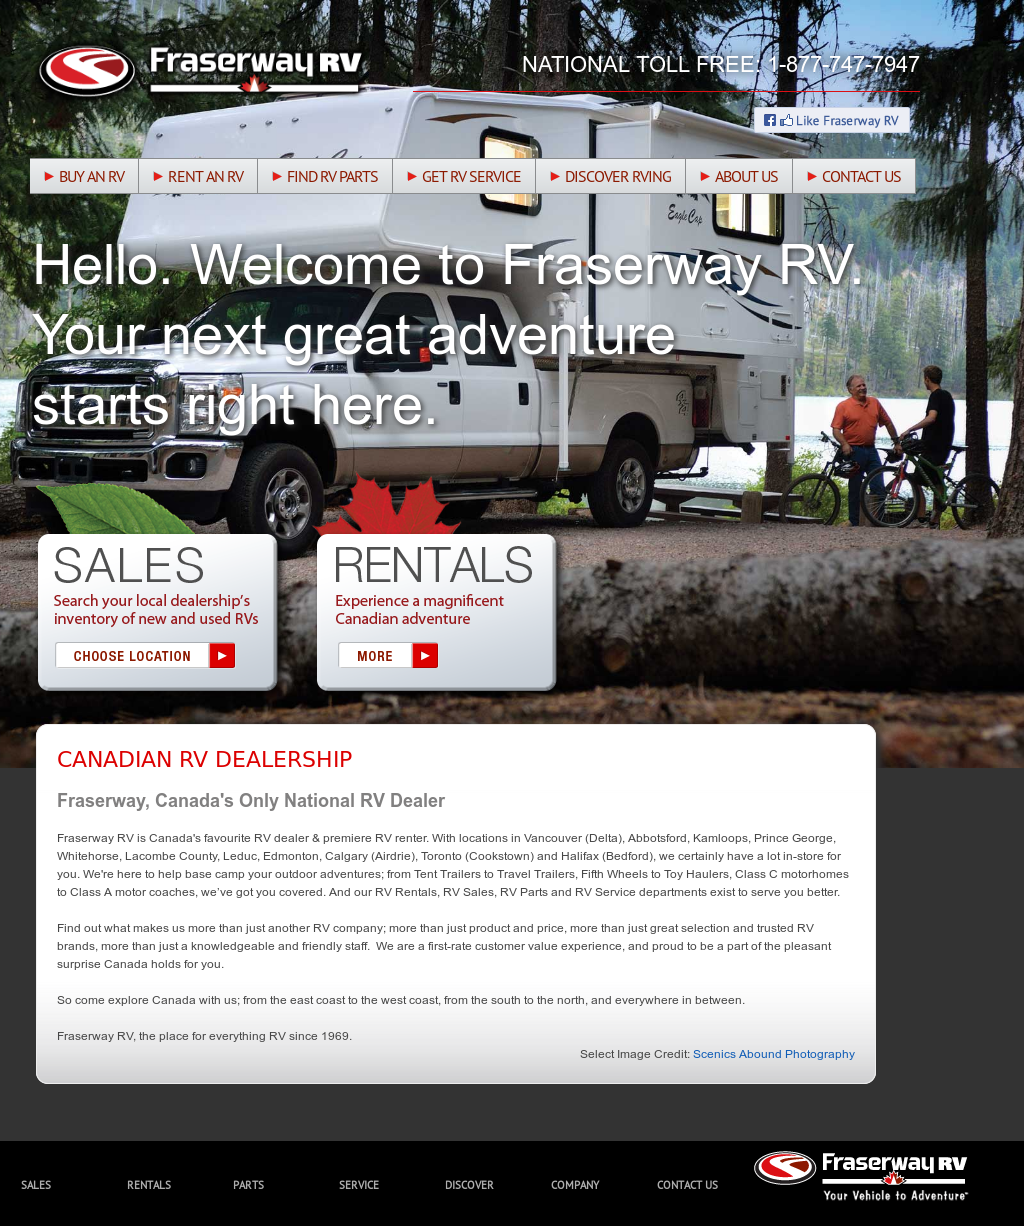 Fraserway RV Competitors, Revenue and Employees - Owler Company Profile